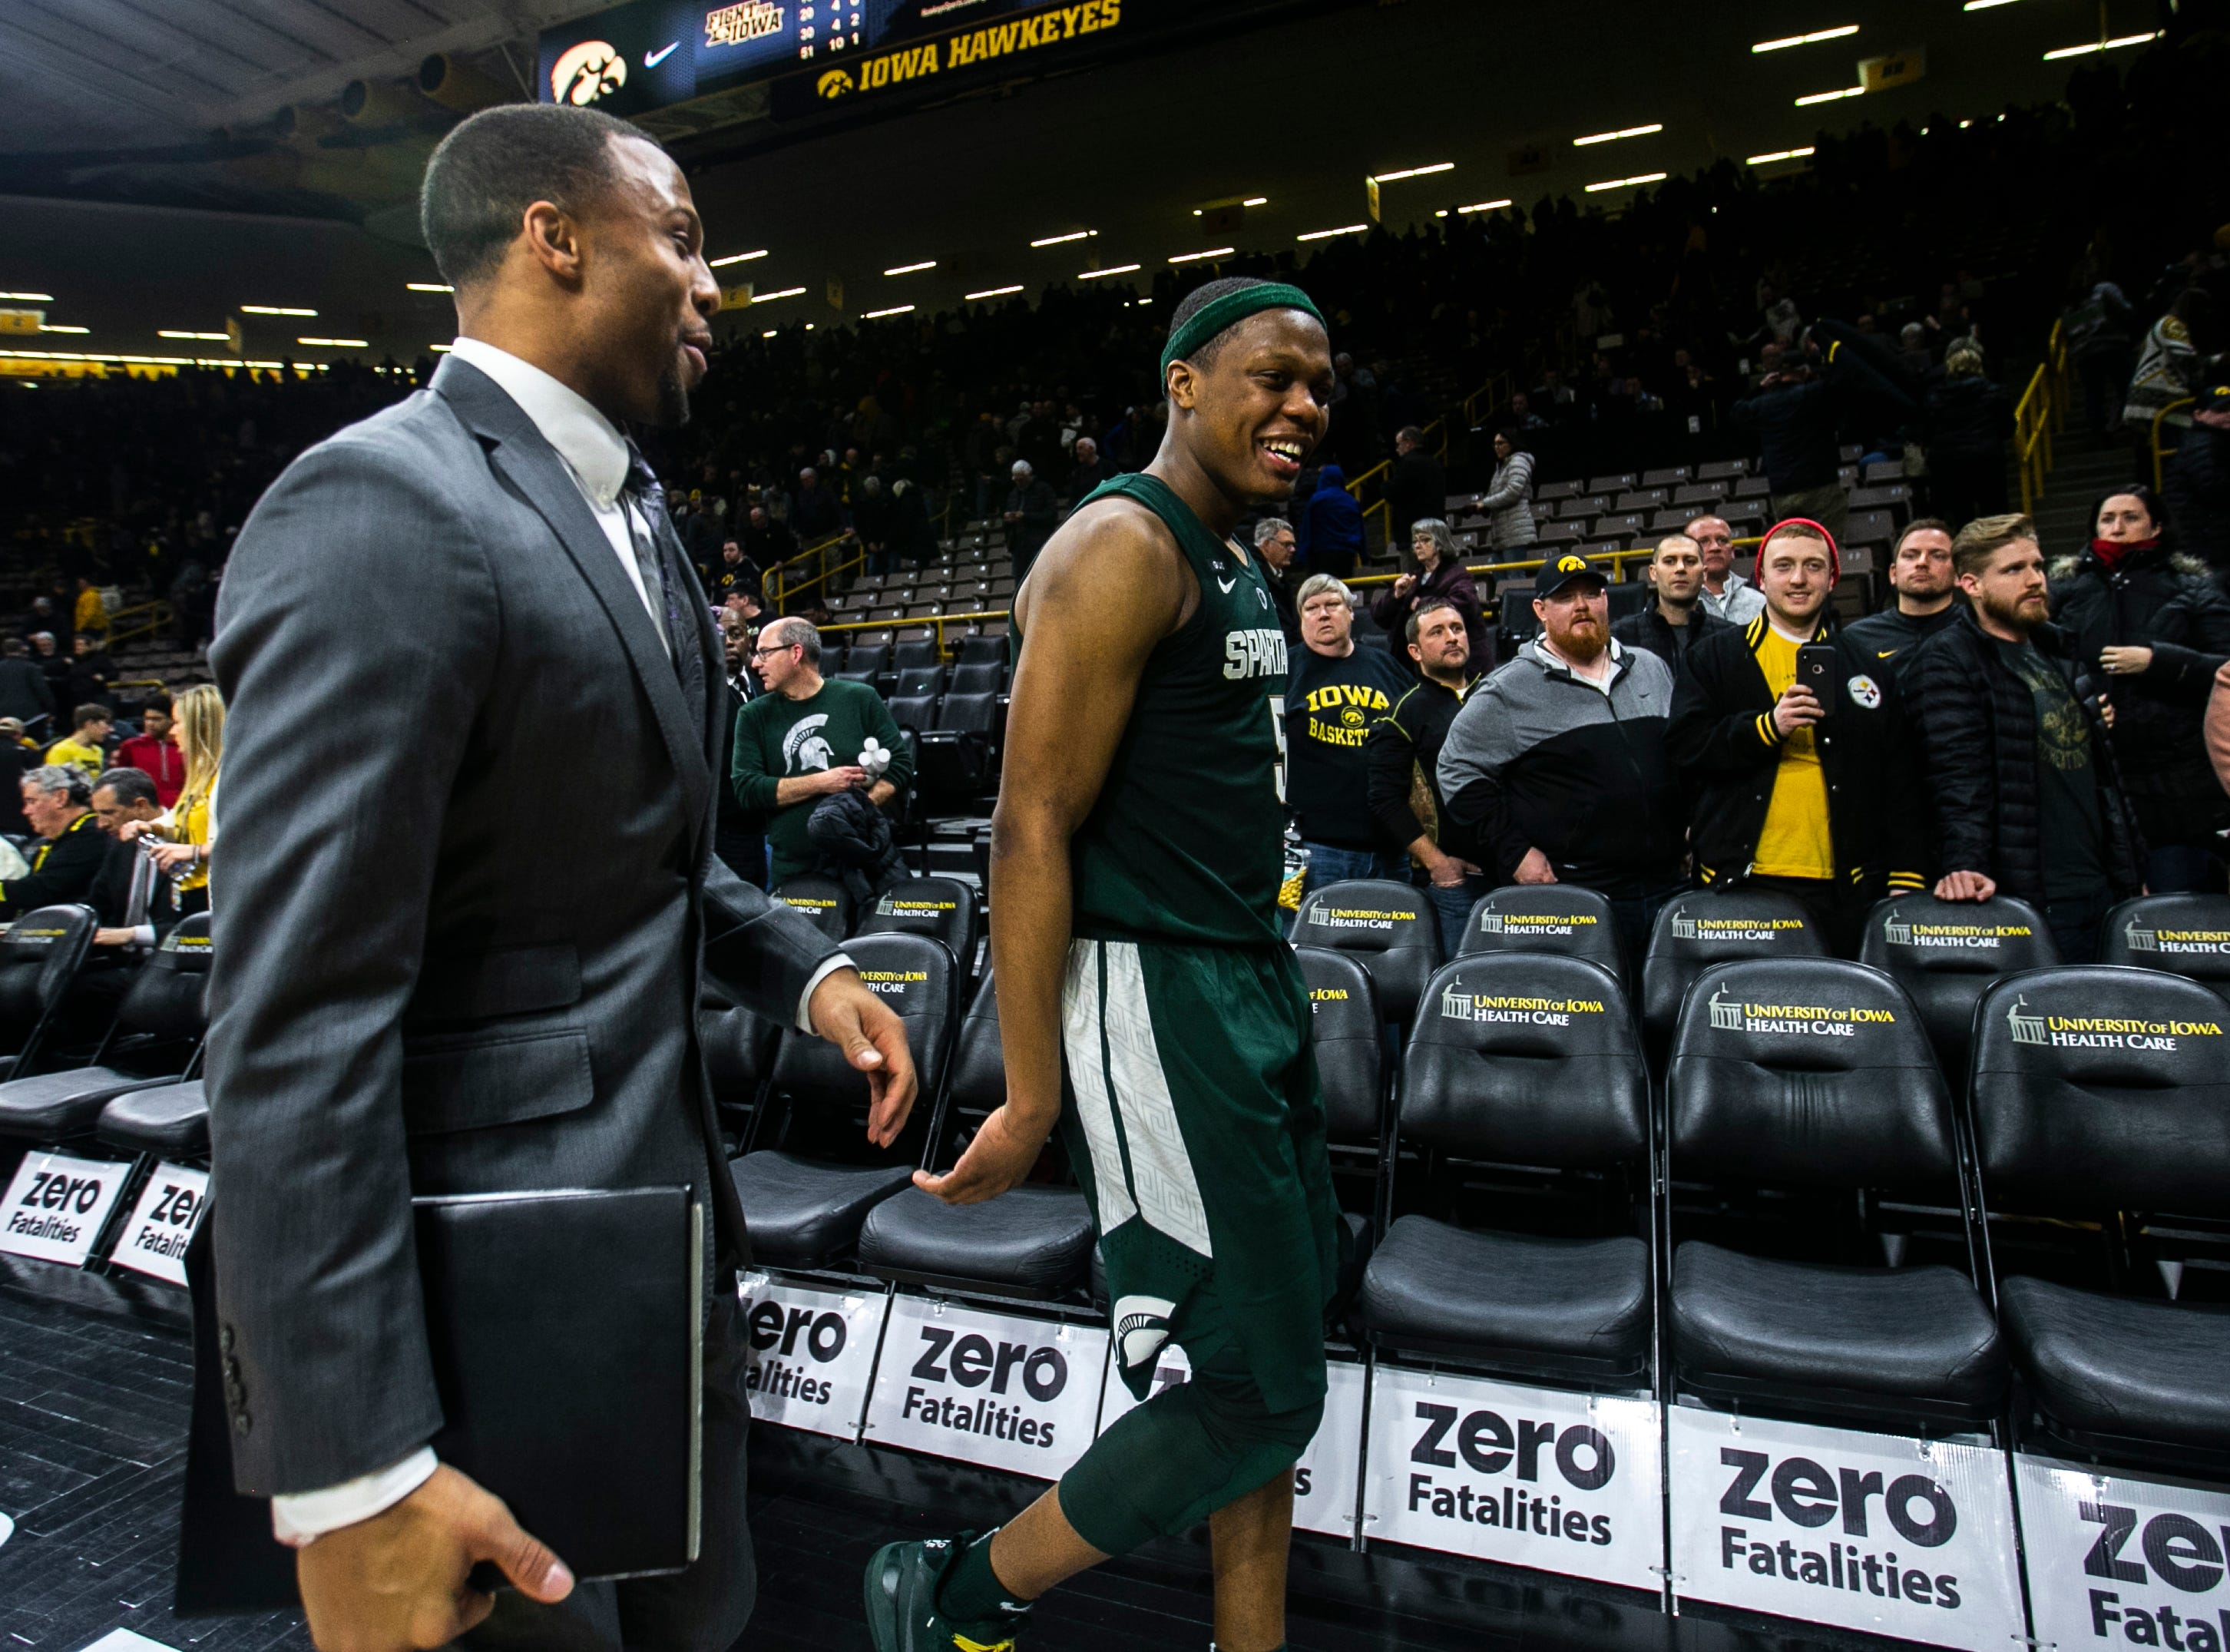 Michigan State guard Cassius Winston (5) smiles while walking off the court during a NCAA Big Ten Conference men's basketball game on Thursday, Jan. 24, 2019, at Carver-Hawkeye Arena in Iowa City, Iowa.